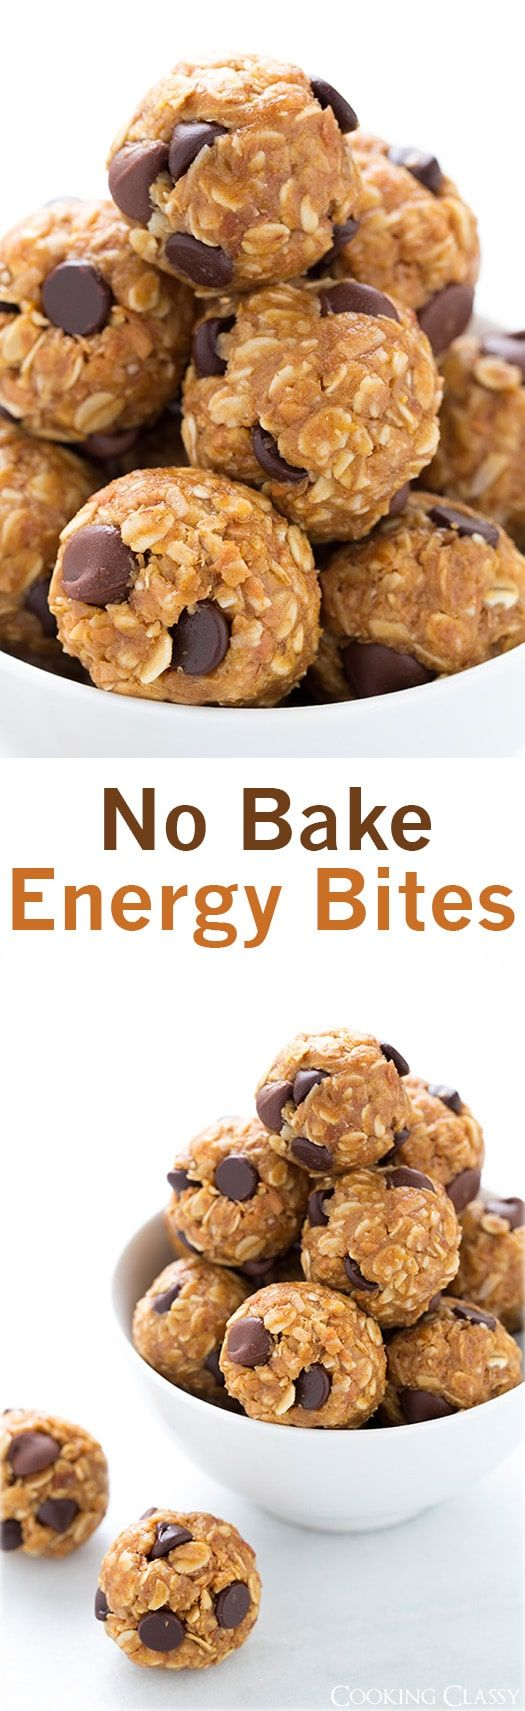 No Bake Energy Bites. The perfect on the go midday snack that couldn't be easier to make at home.   Energy Snacks   Energy Balls   #cookingclassy #bites #energy #snacks #evergyballs #snackrecipe #nobake #healthyrecipe #healthysnack